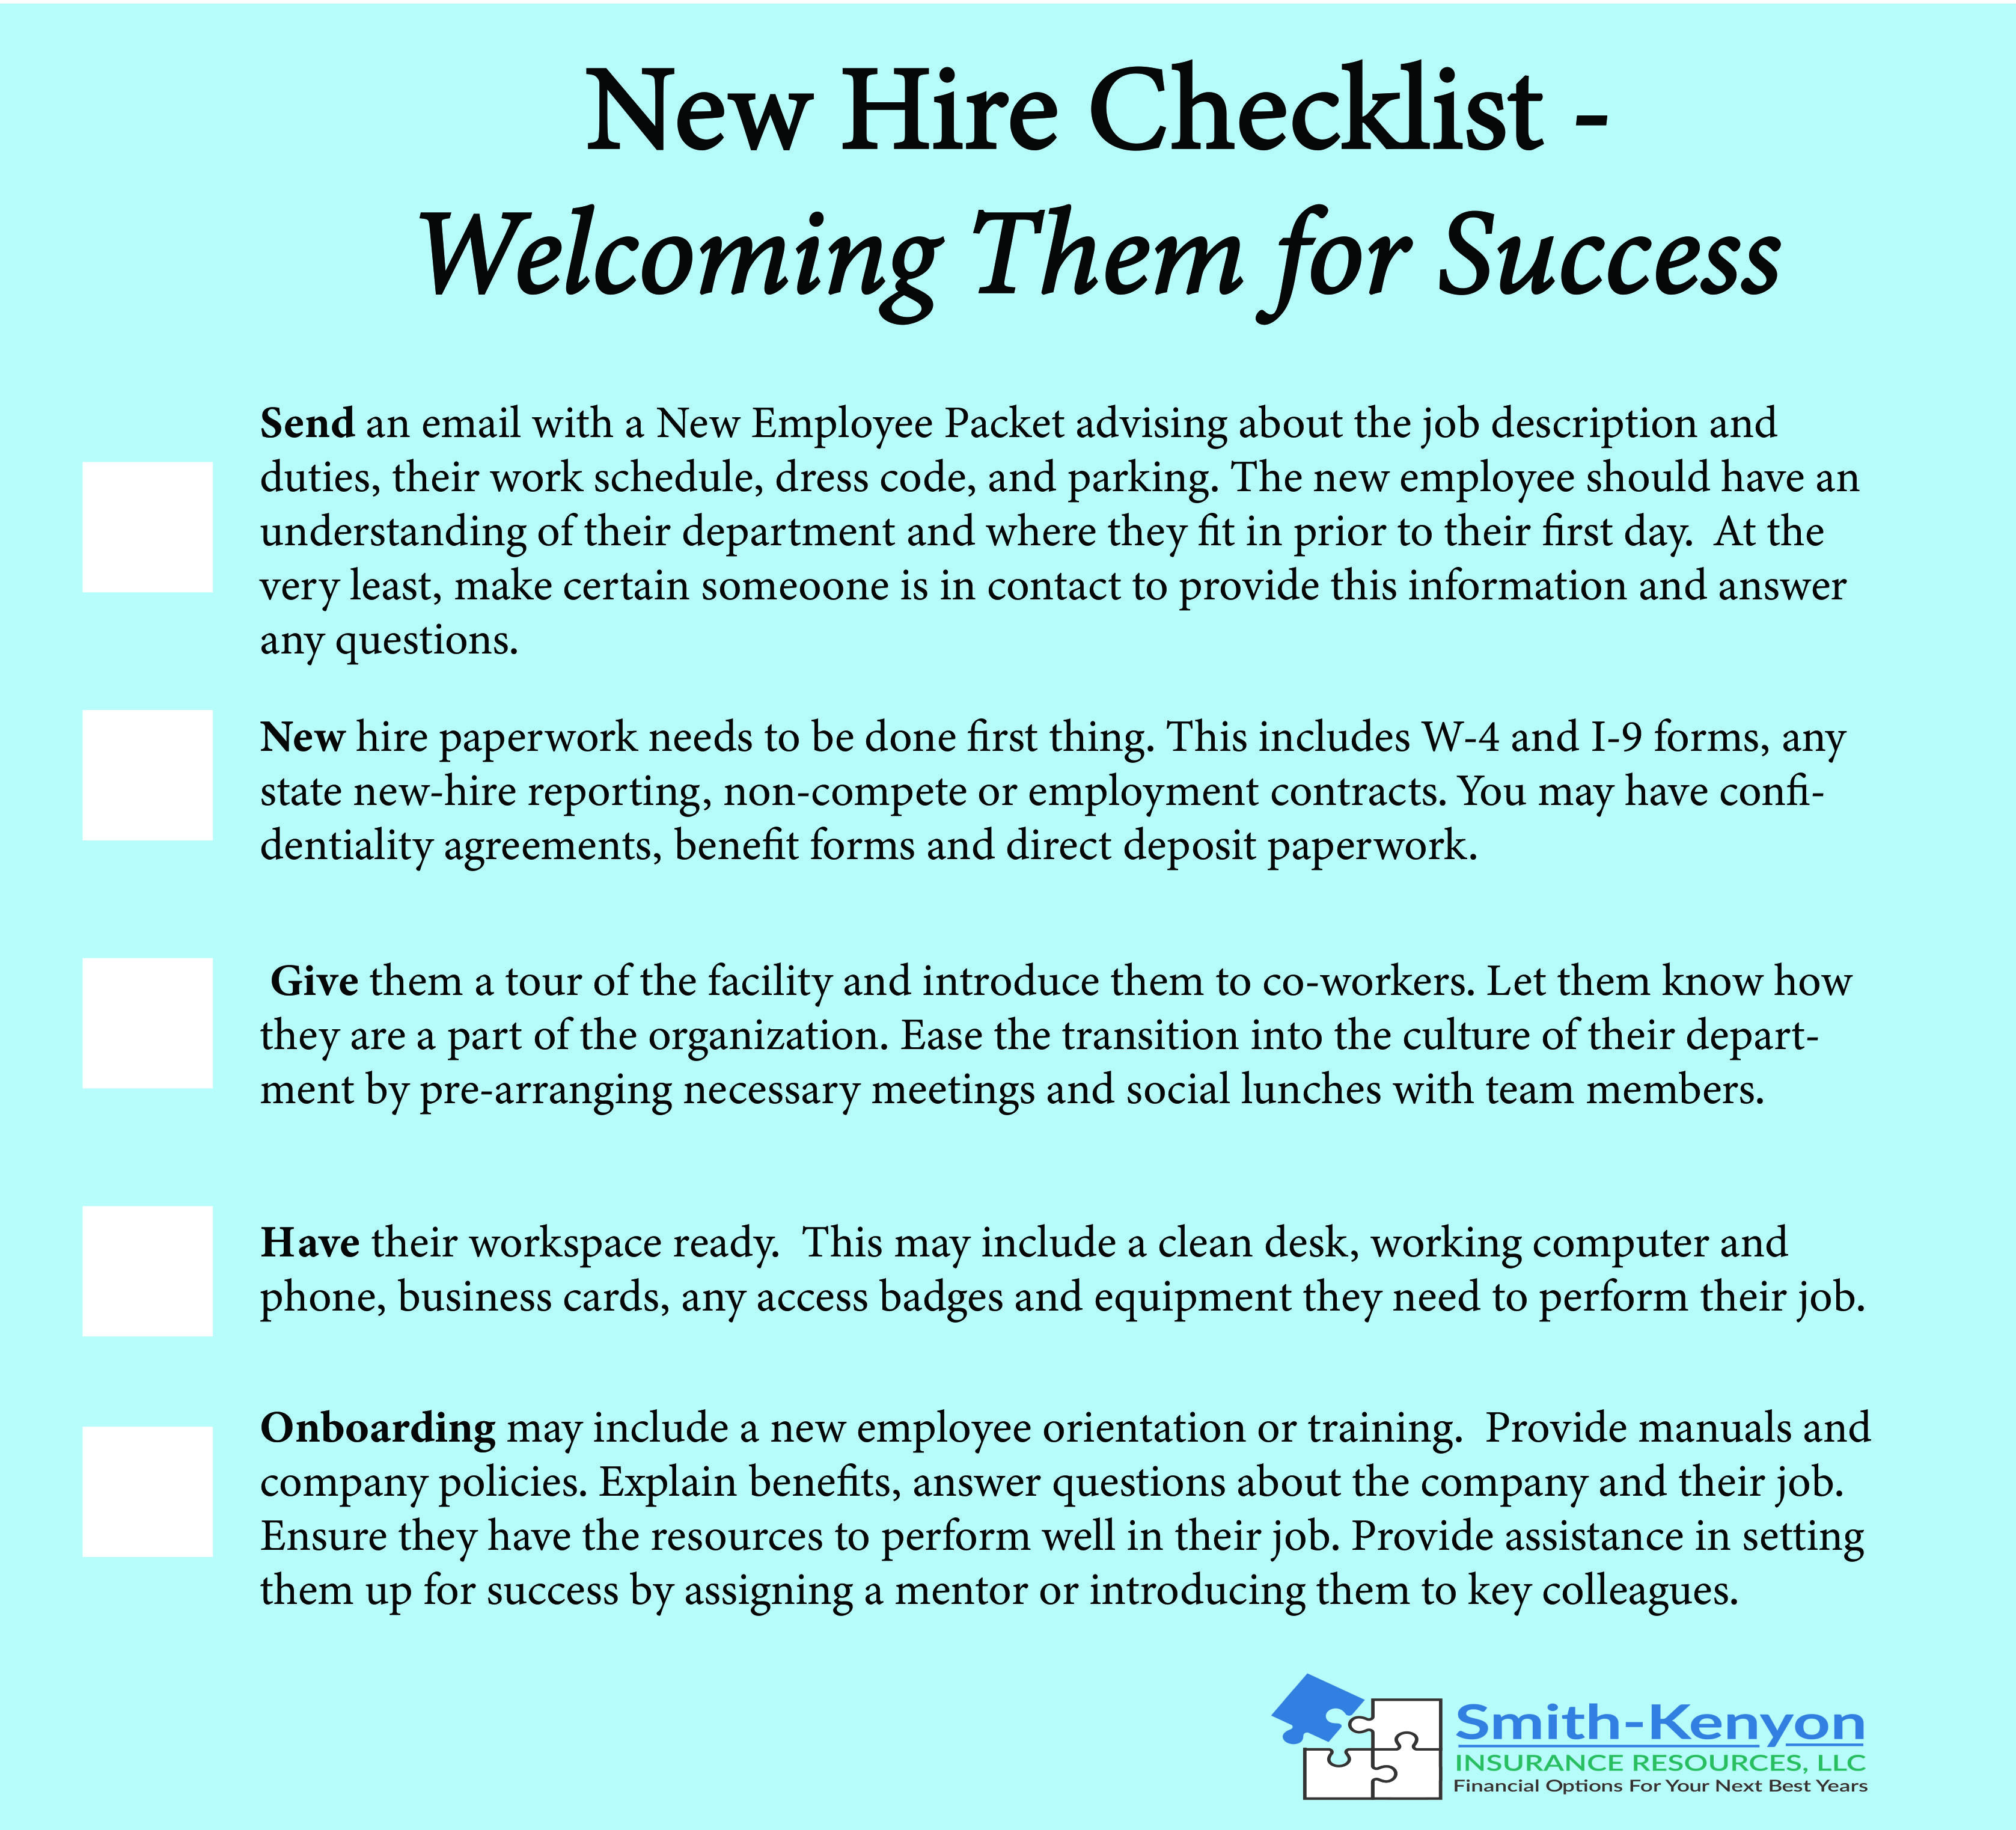 New Hire Checklist For Small Business Owners Checklist